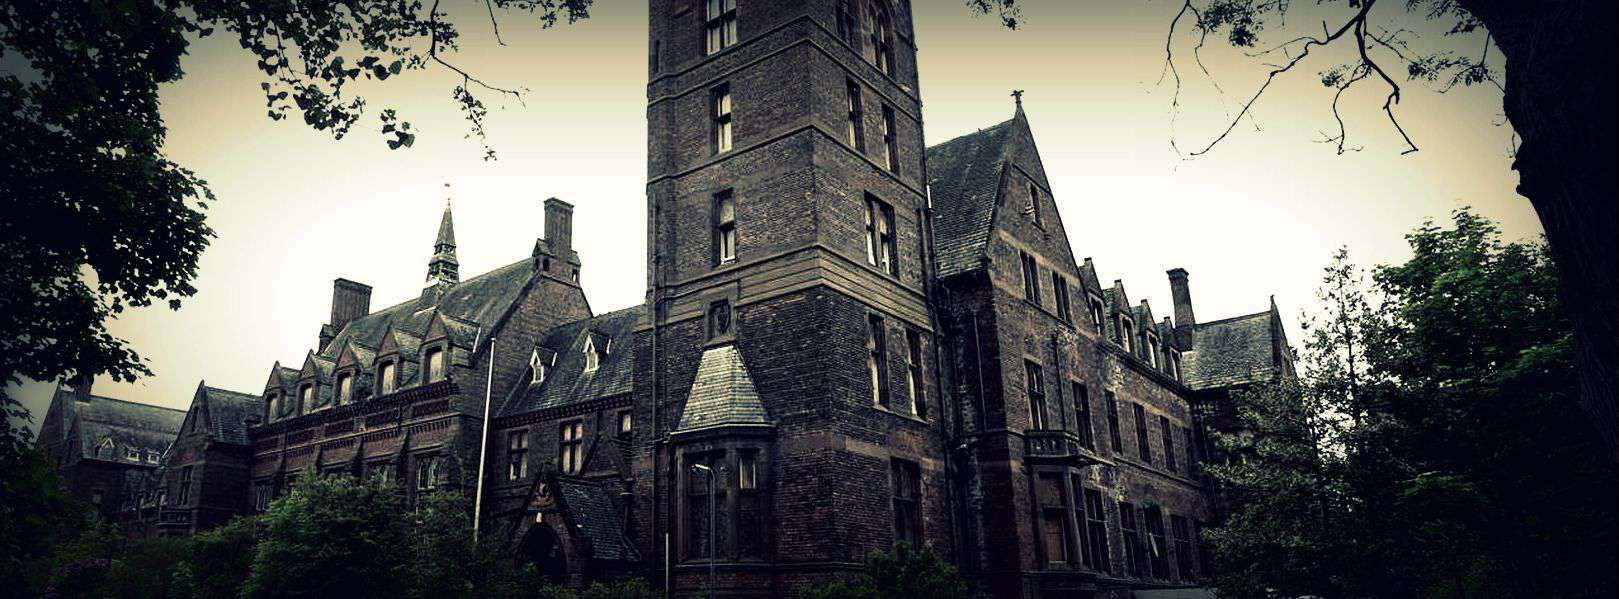 Newsham Park Abandoned Hospital Liverpool